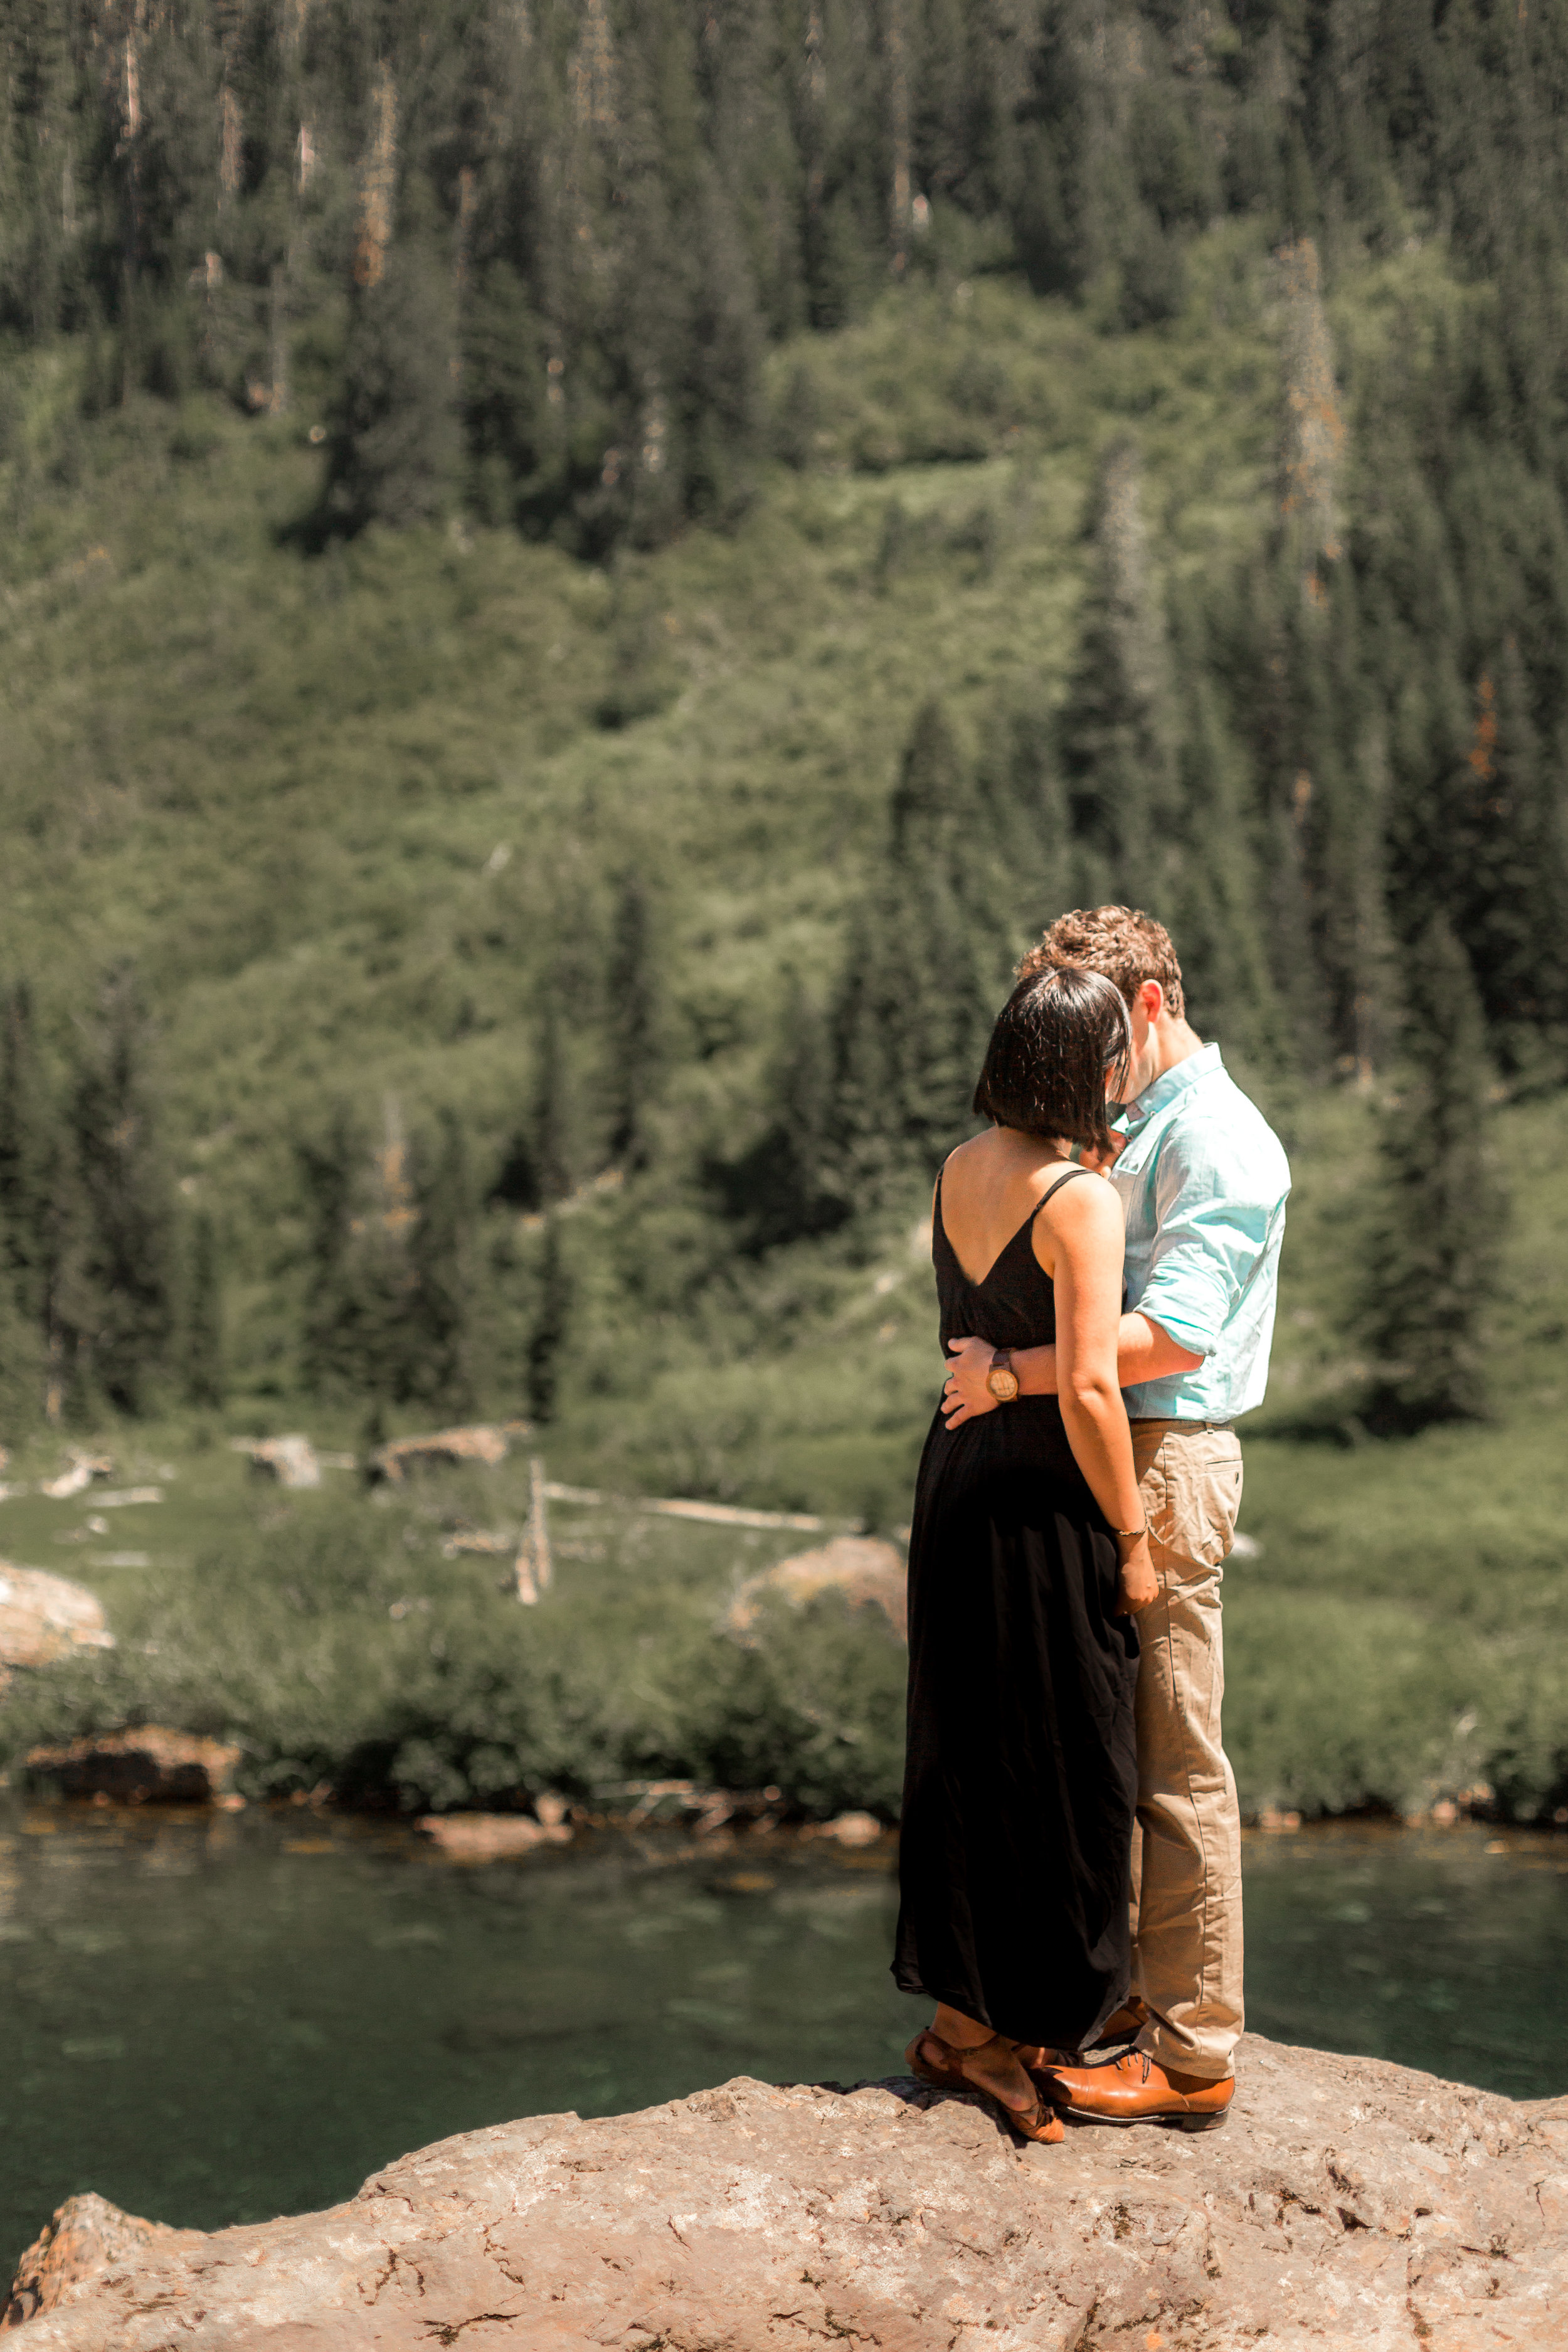 nicole-daacke-photography-hiking-engagement-session-in-snoqualmie-pass-washington-wedding-photographer-seattle-elopement-photography-adventurous-hiking-photos-heather-lake-washington-trails-14.jpg